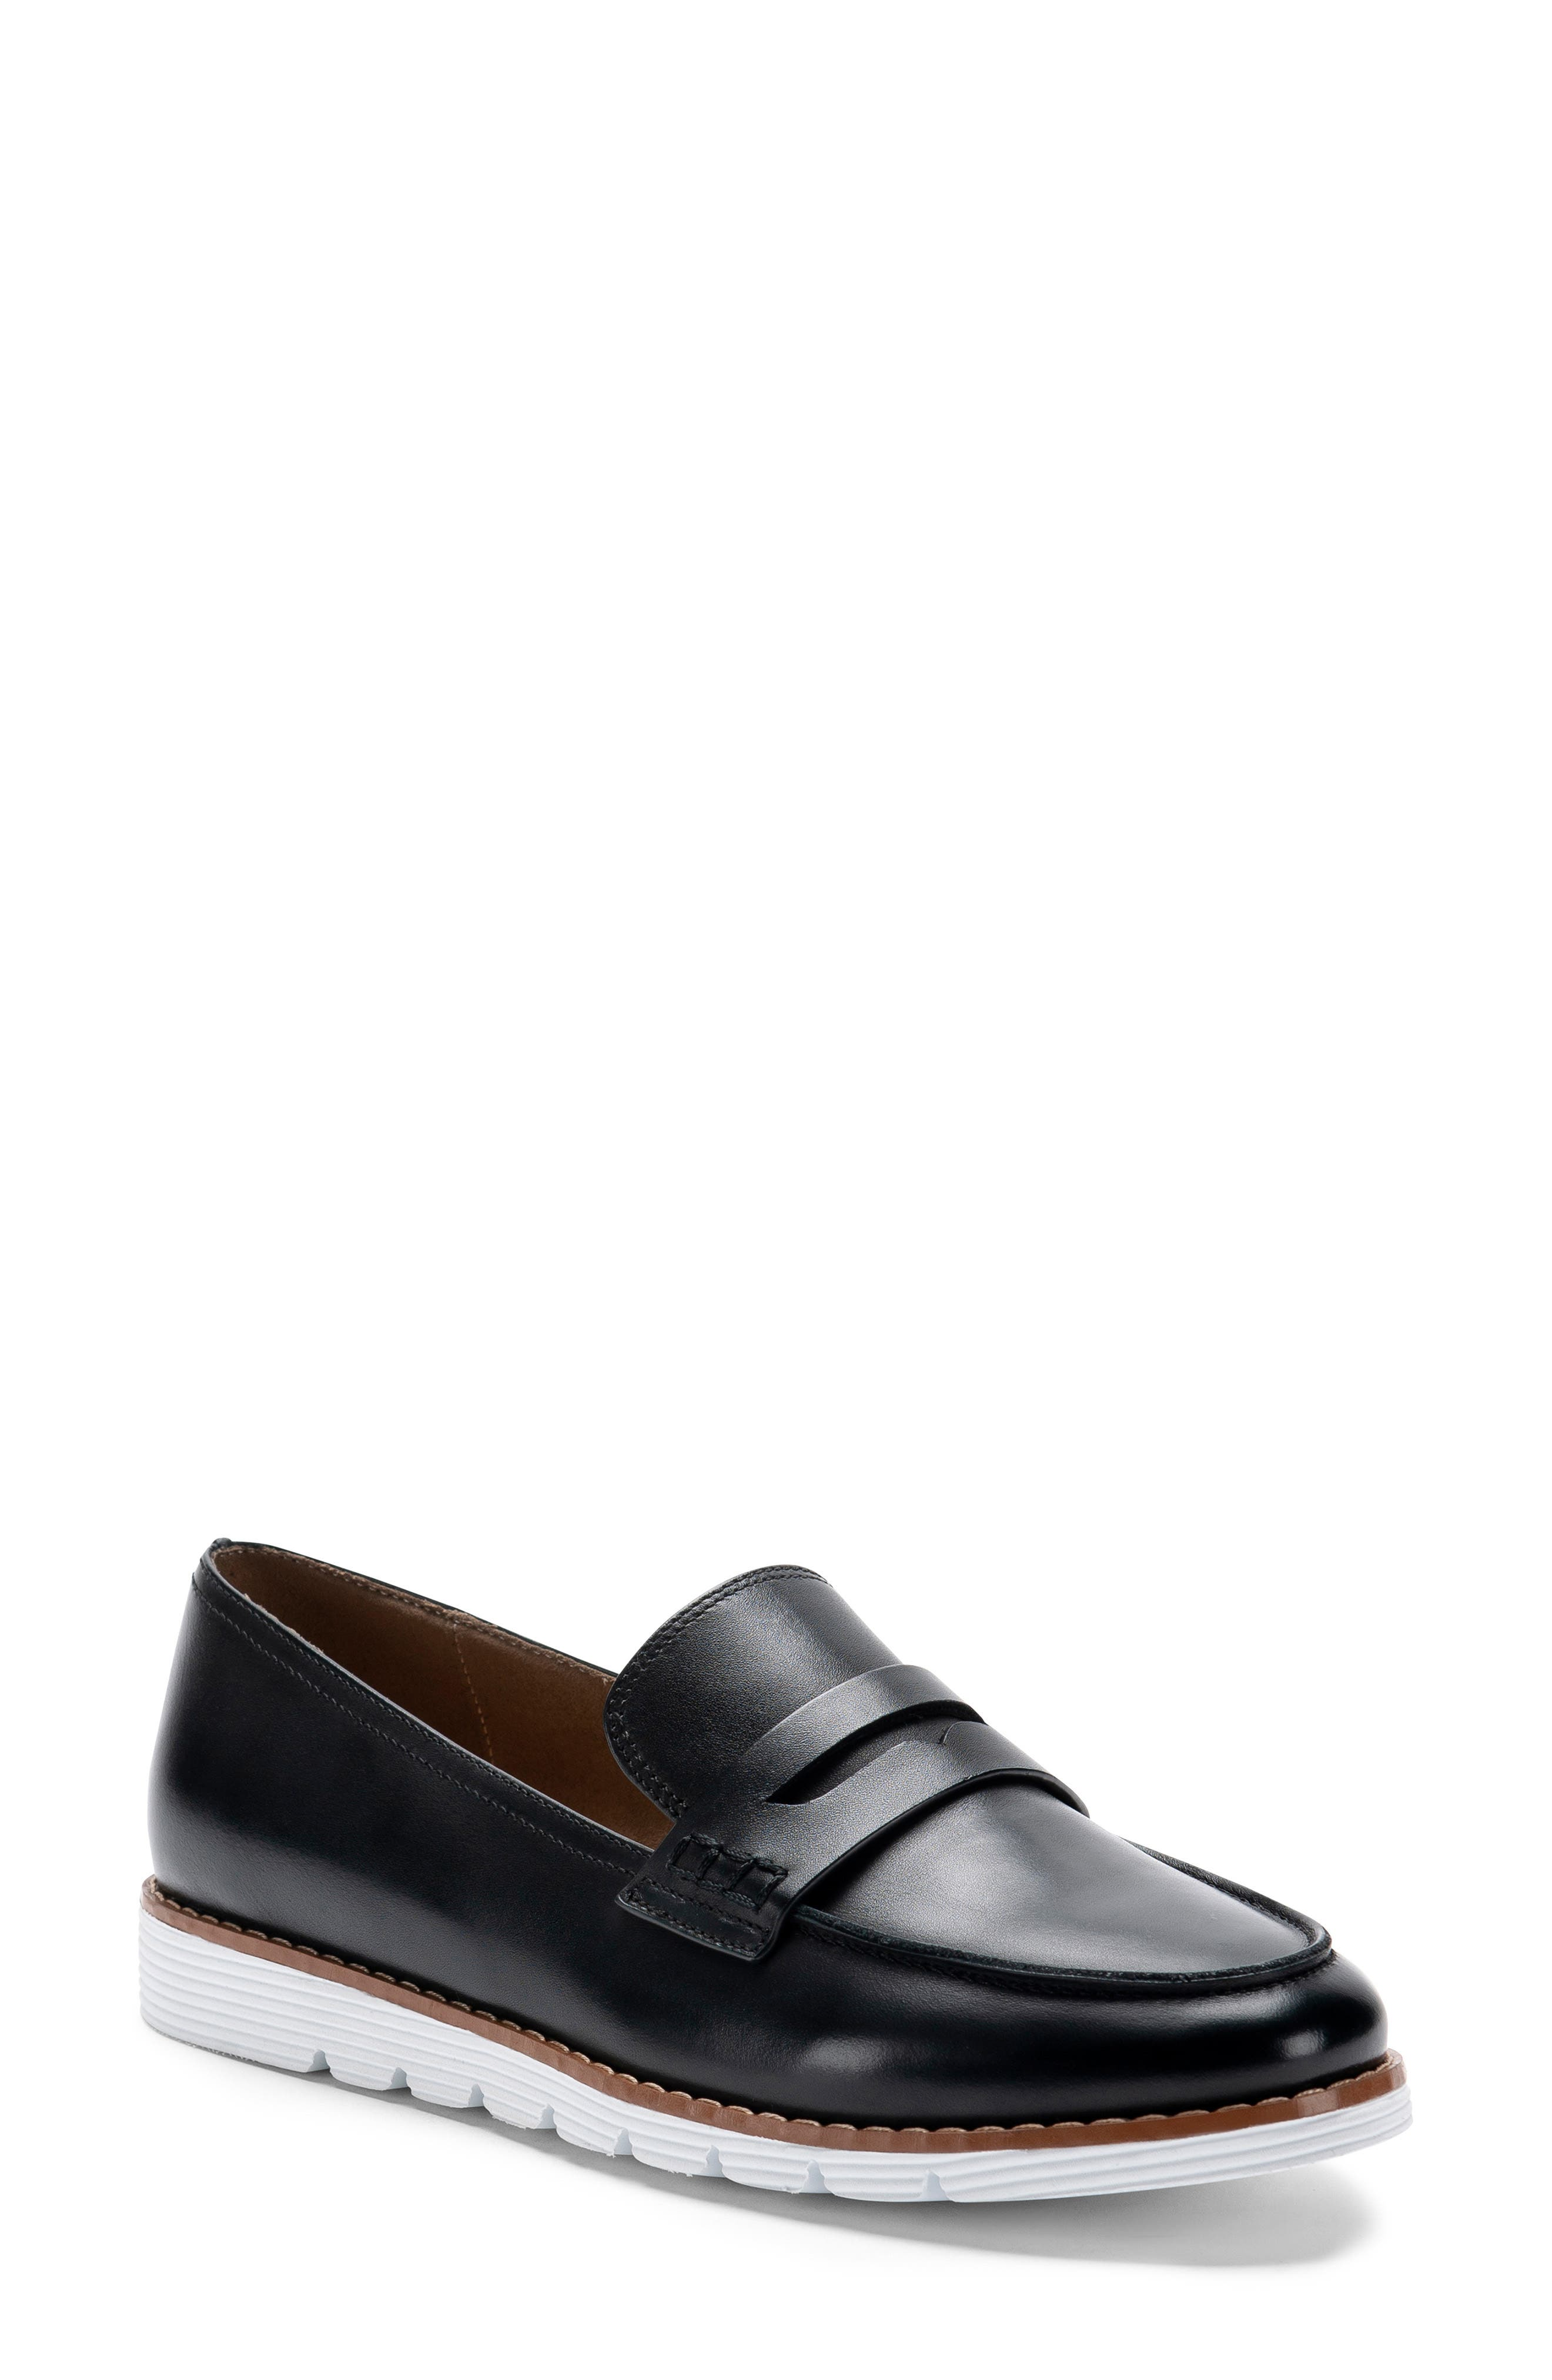 BLONDO, Waterproof Penny Loafer, Main thumbnail 1, color, BLACK LEATHER